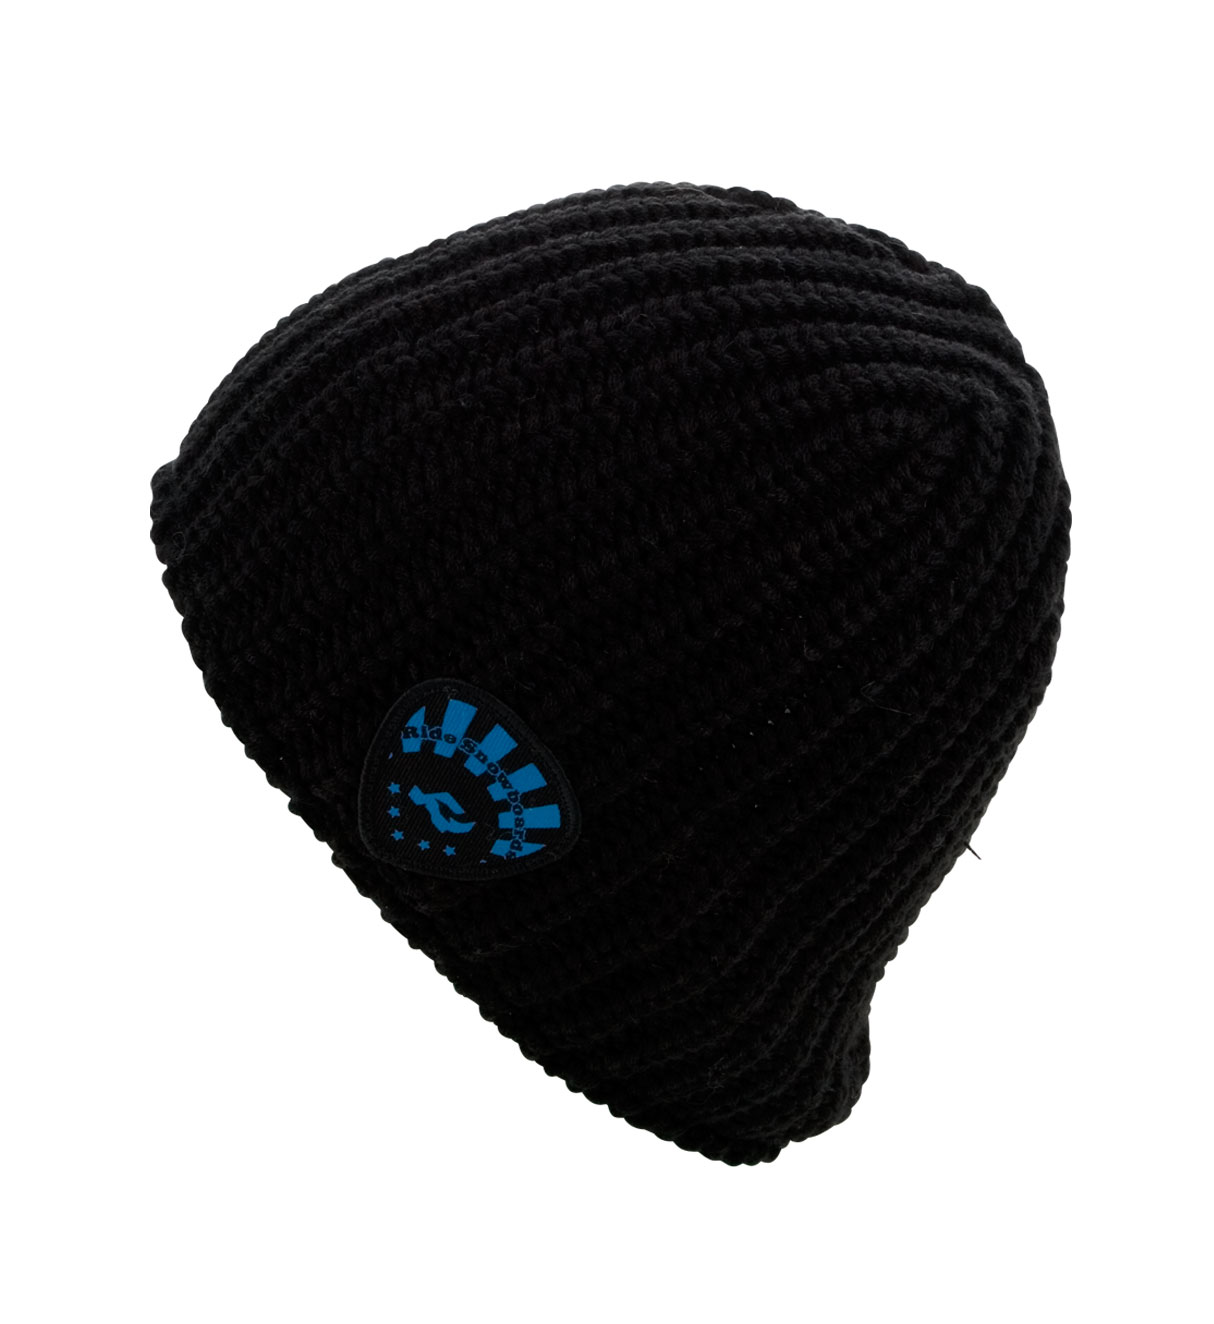 Keep the heat in and your head dry with Ride's function-meets-fashion beanies.Key Features of the Ride Beanie: Boys - One Size Fits Most Medium-Weight 100% Acrylic Fleece Lined Sewn on Patch - $8.55